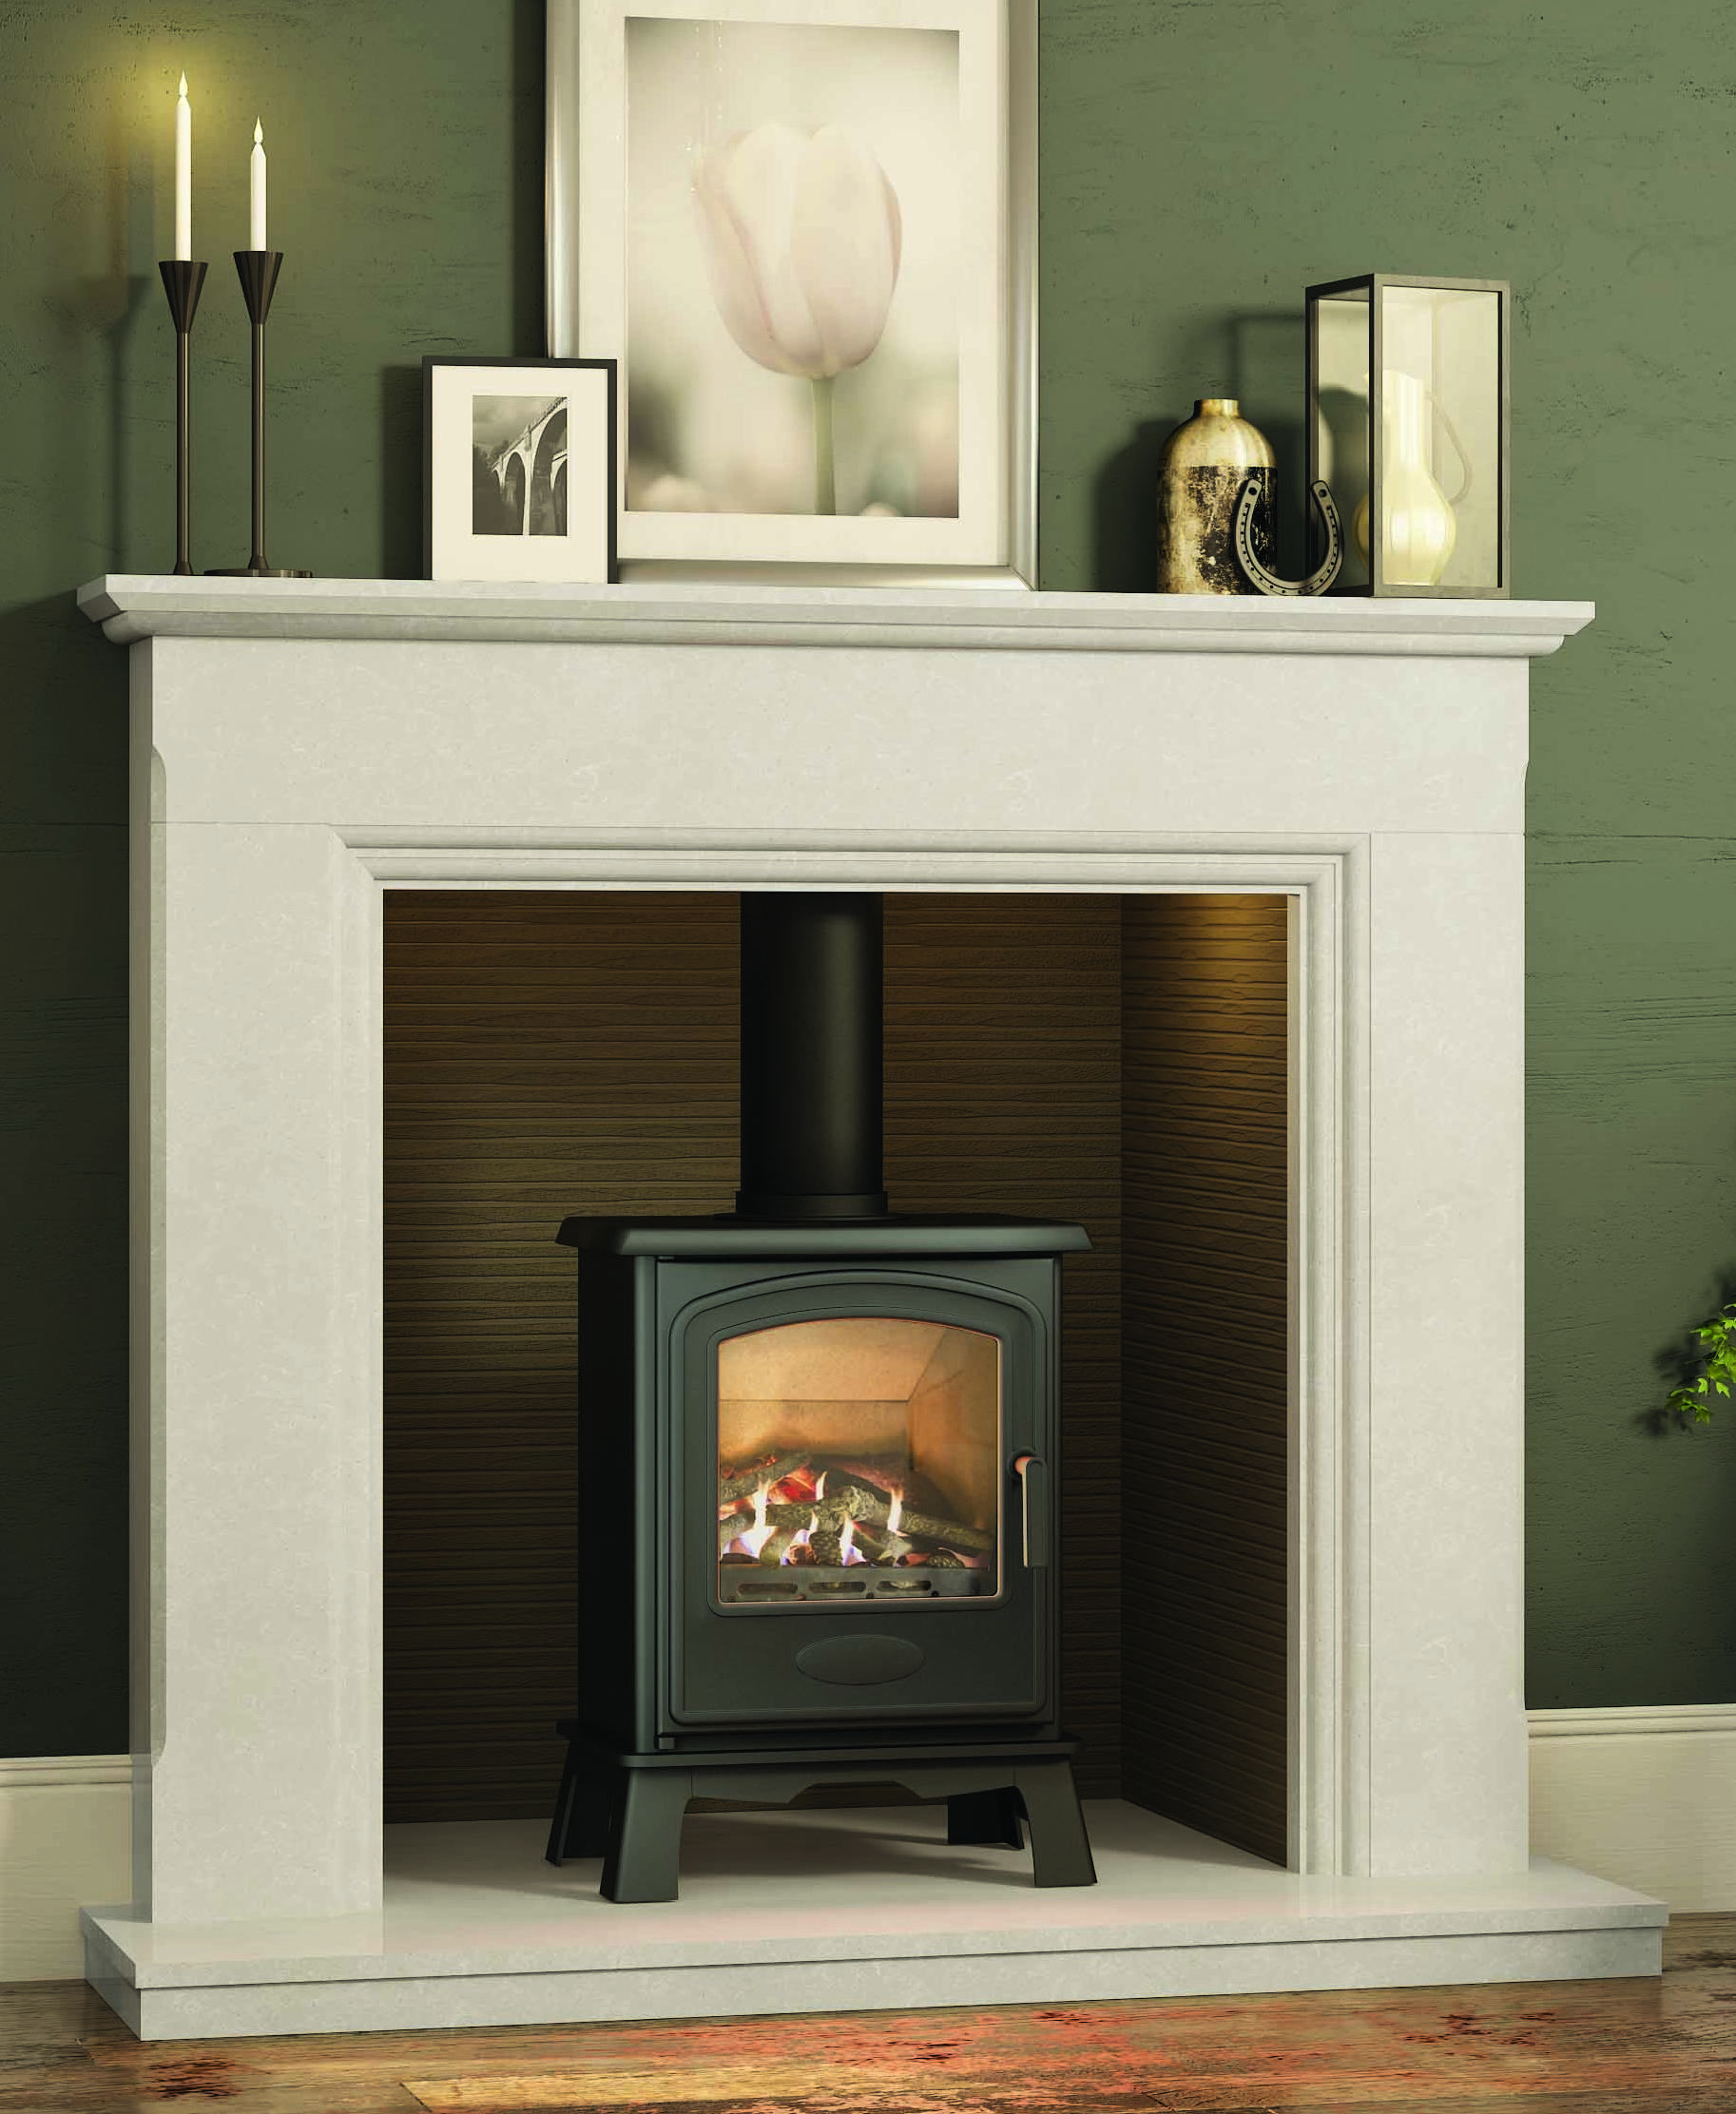 4.6KW Hereford 5 Conventional Gas Stove